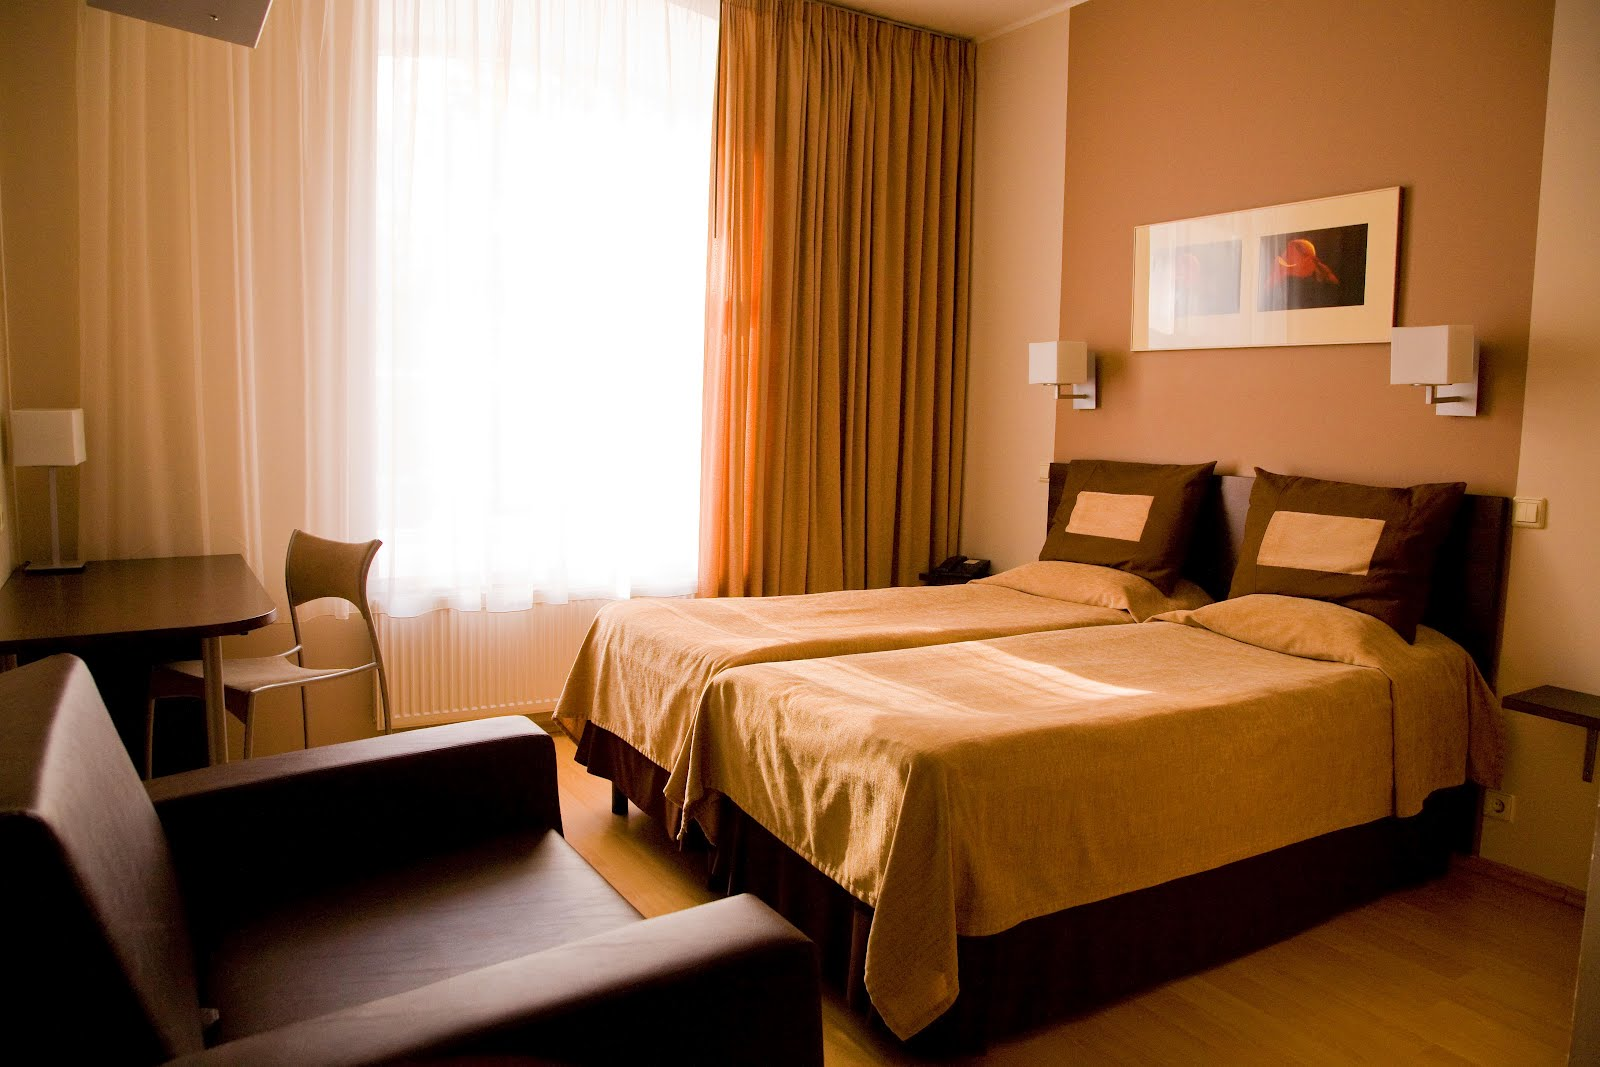 cheap hotel hotels rooms famous budget decoration room delhi aiims places nice